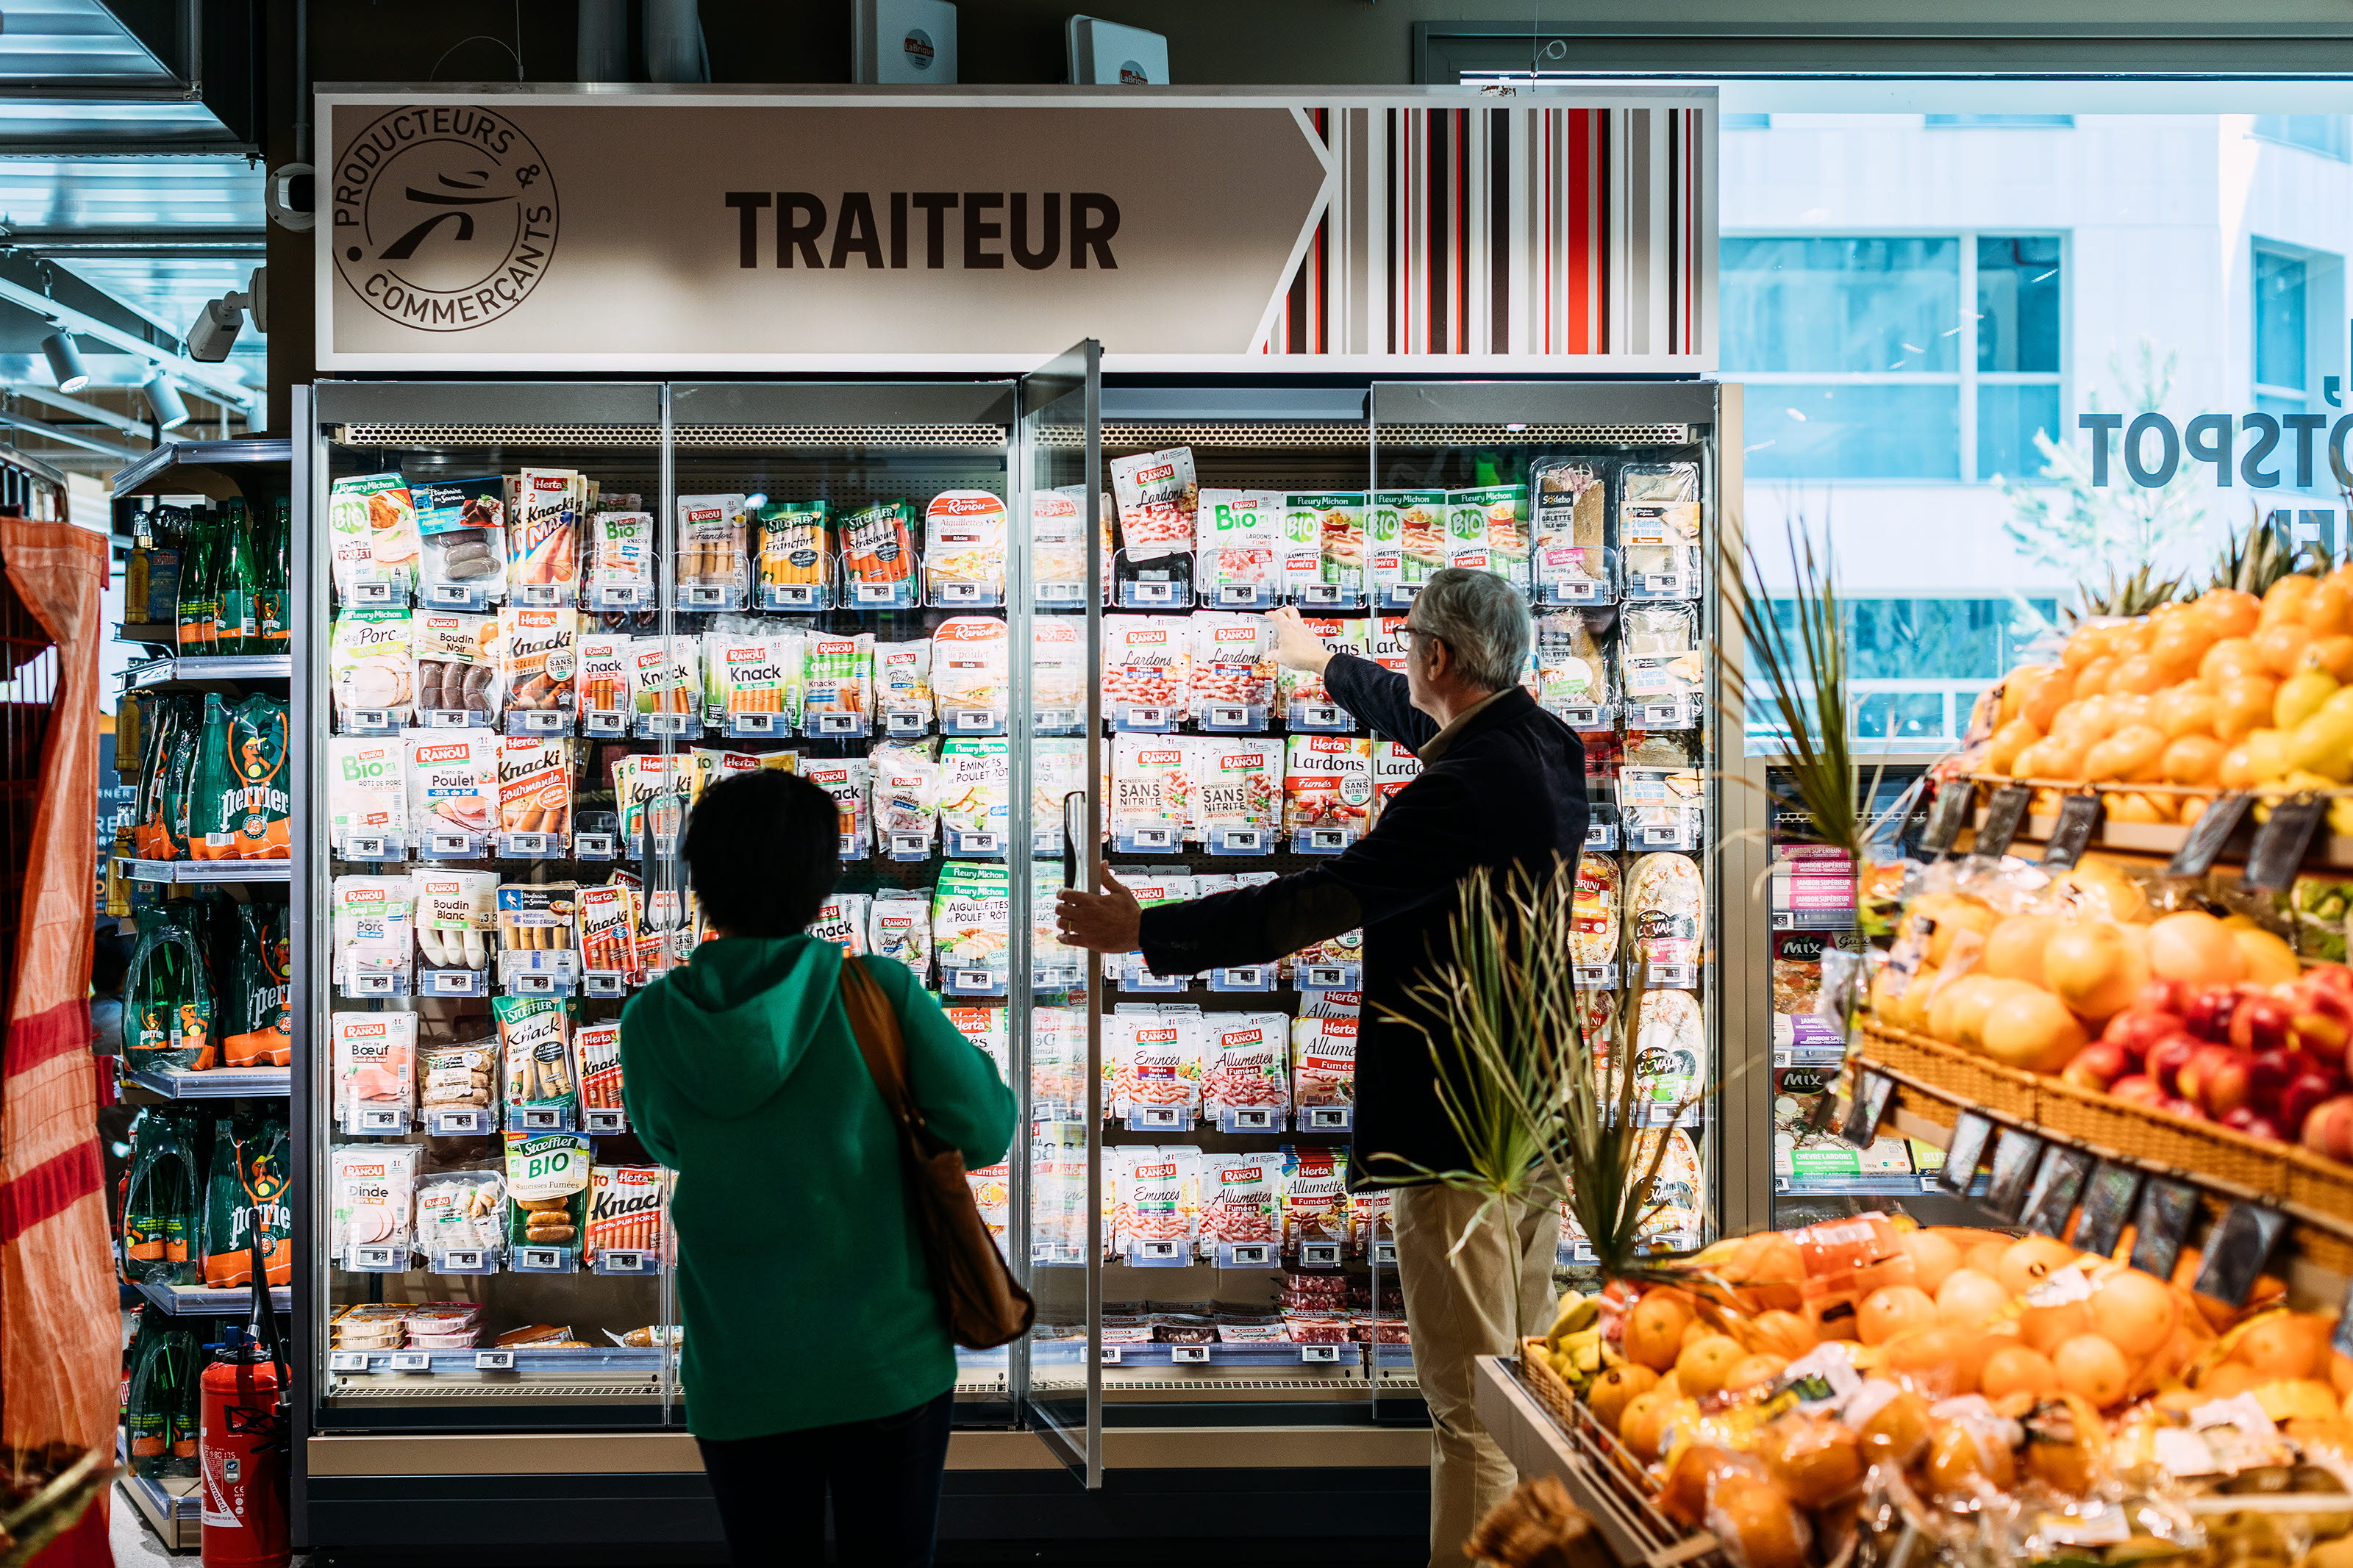 Intermarche_2_NEXT_France_HL-Display_2019_004.jpg